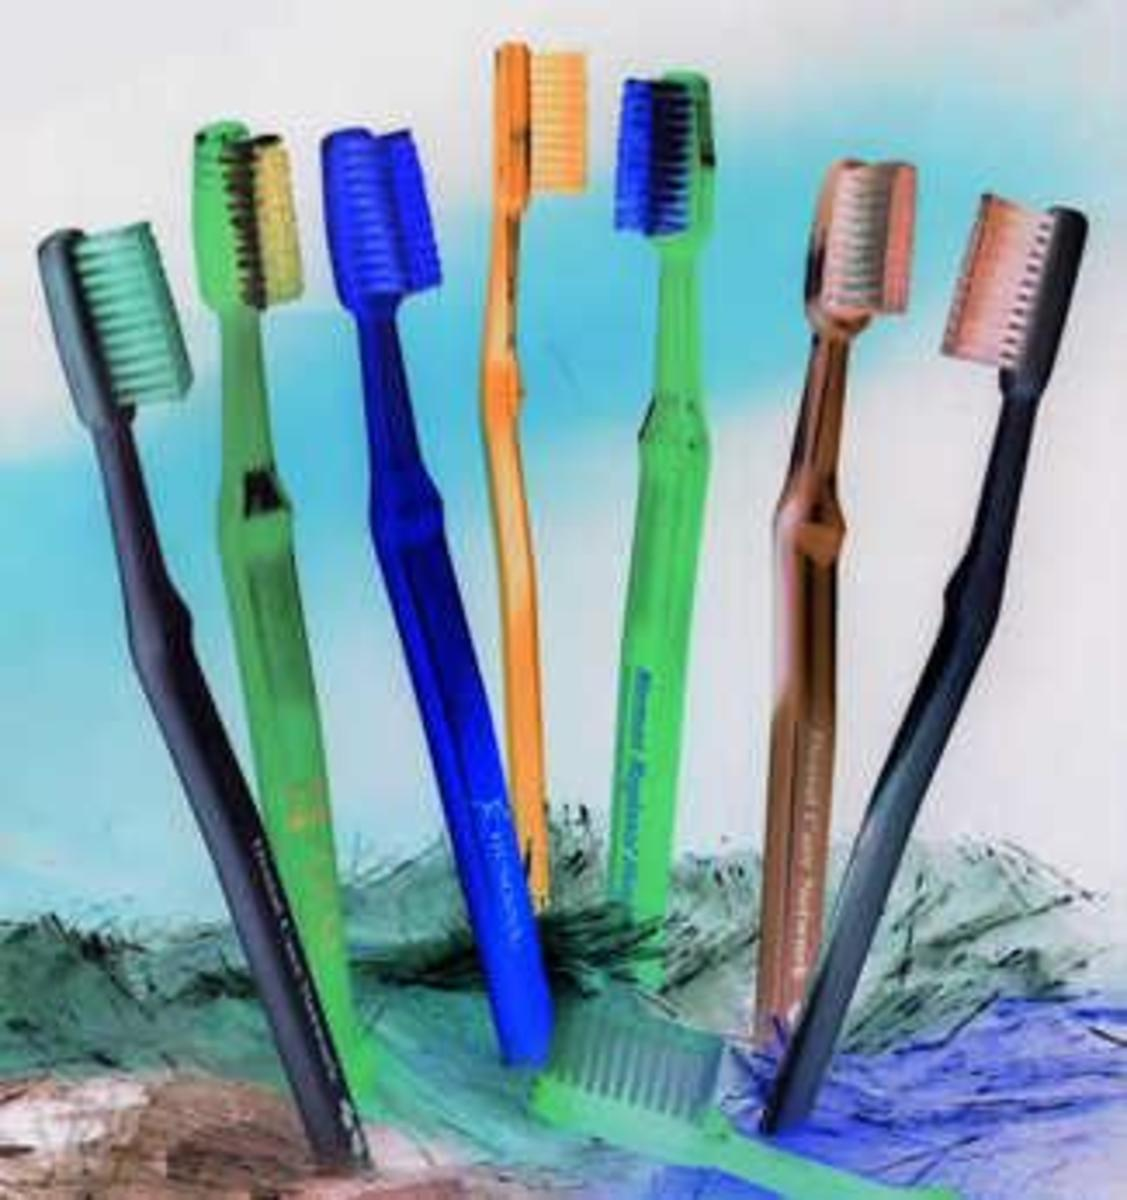 Buy several toothbrushes for each member of the family to store